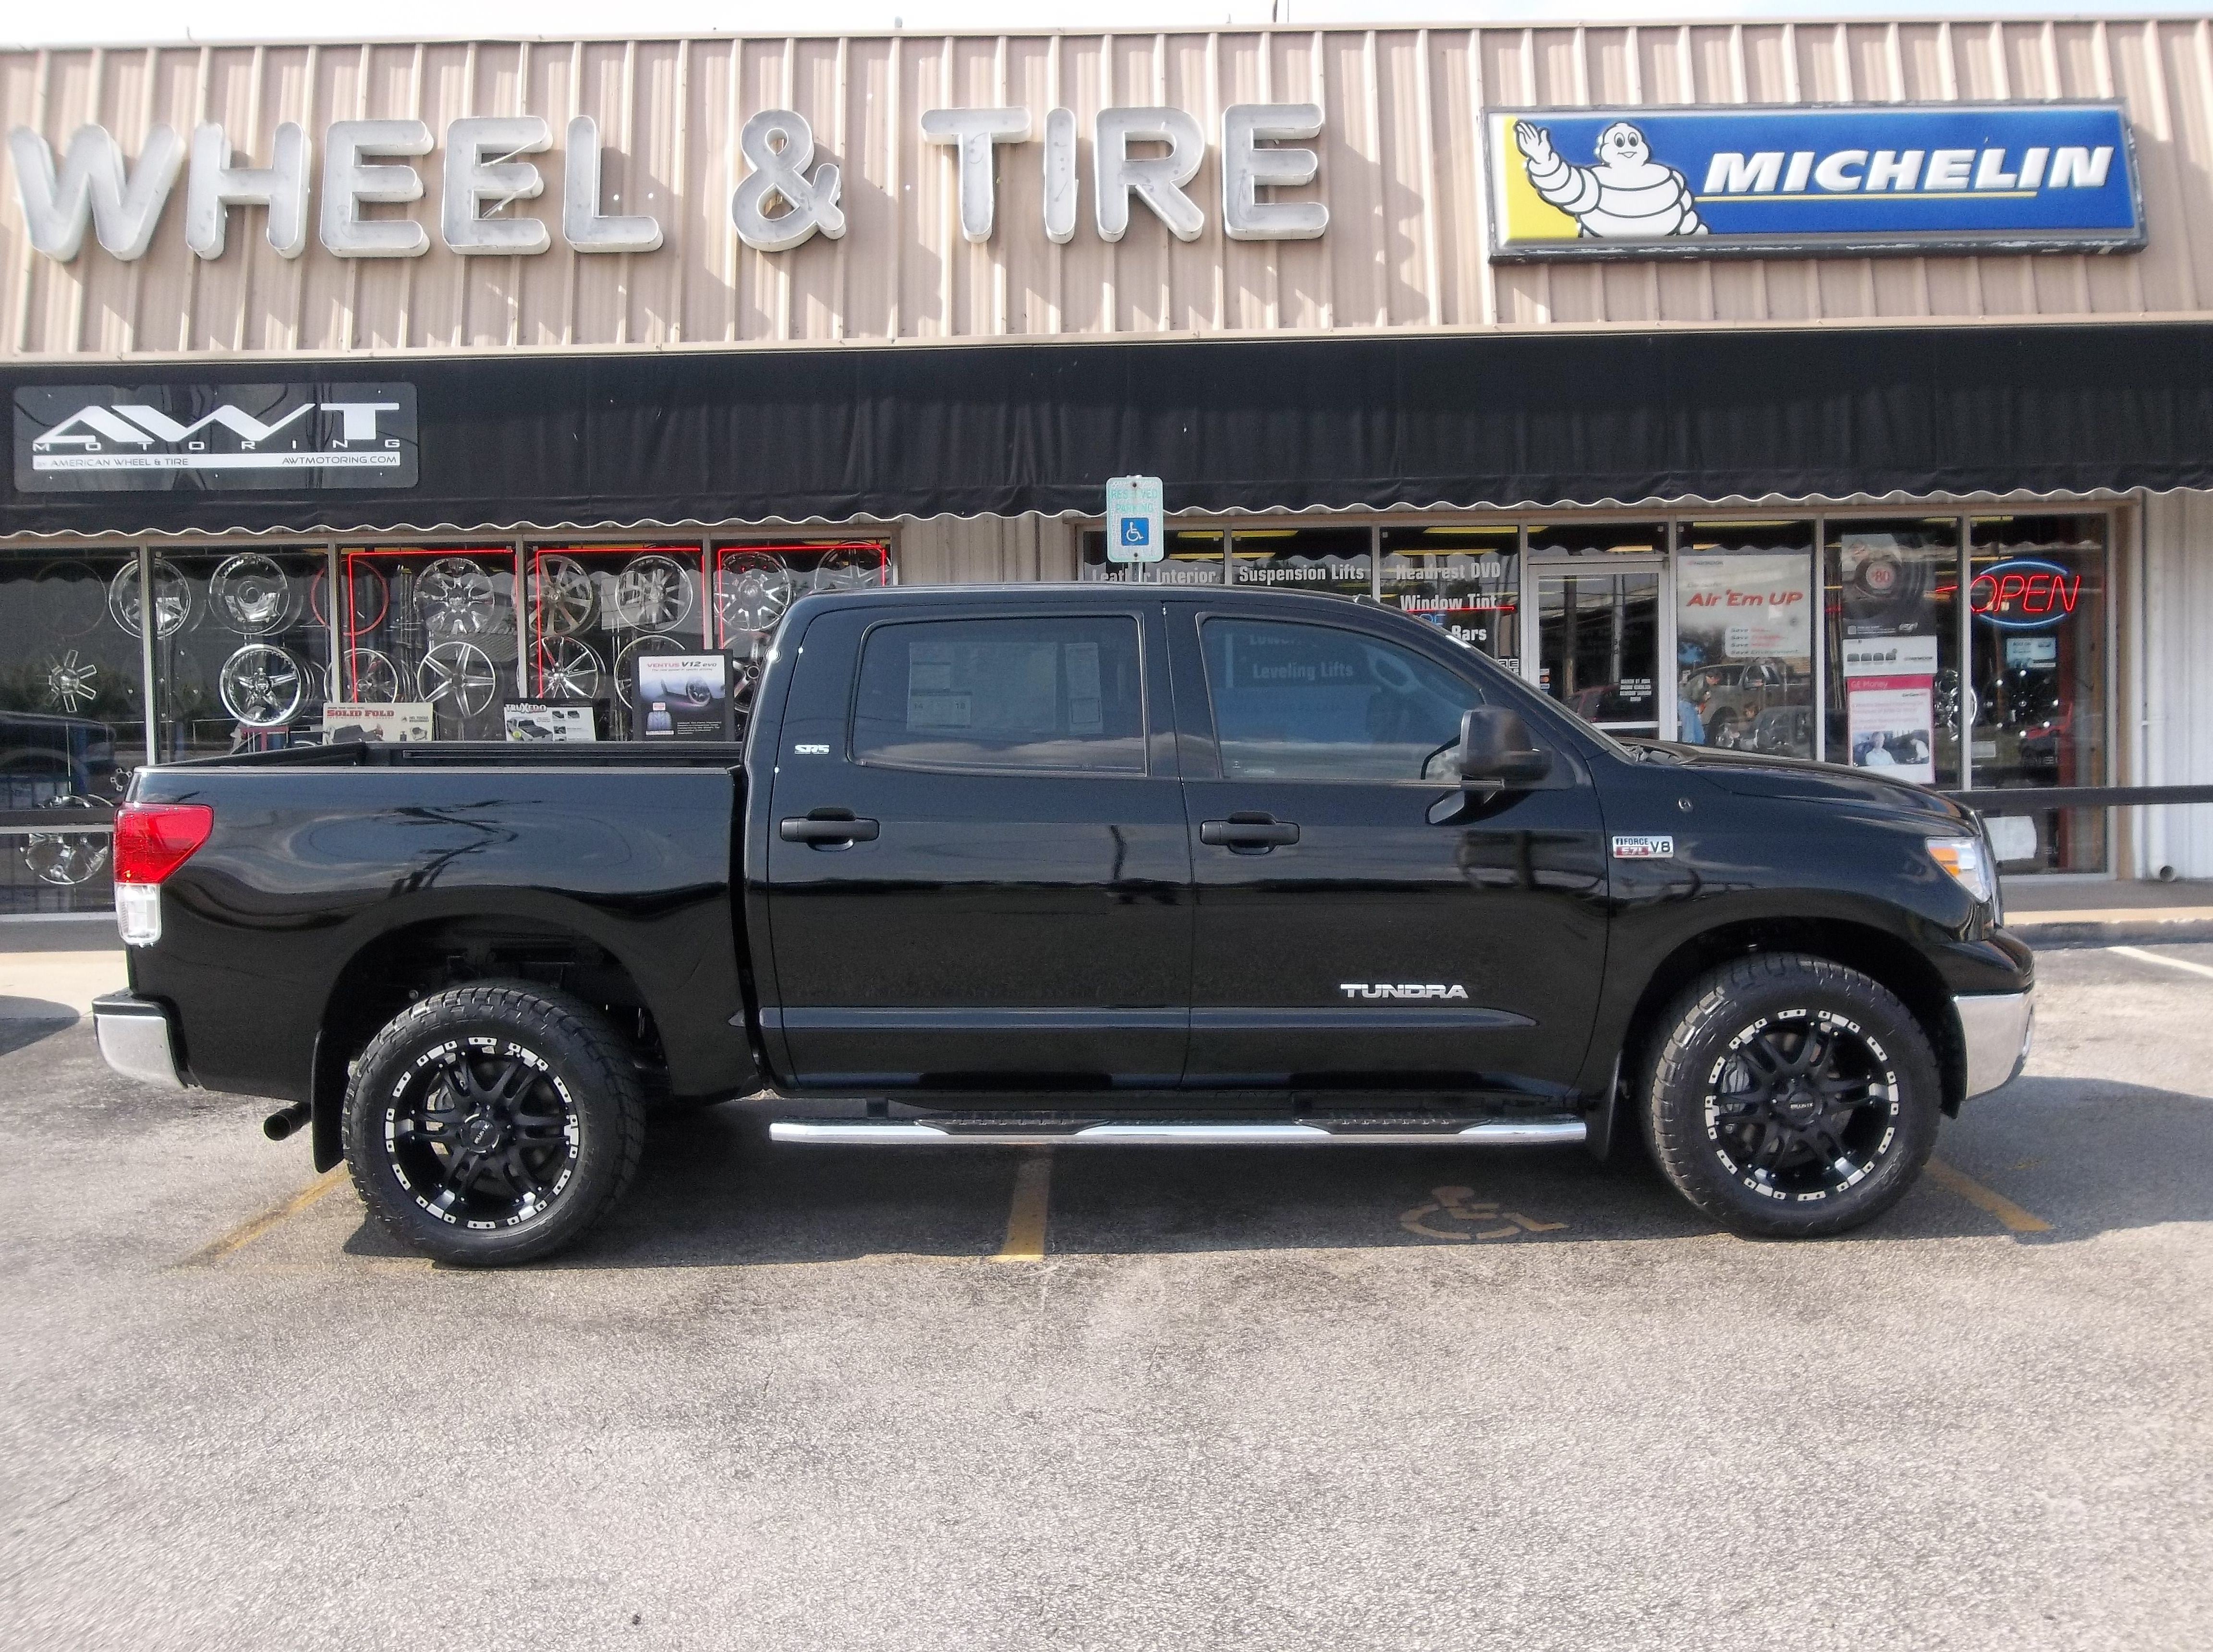 We offer fitment guarantee on our rims for toyota tundra all toyota tundra rims for sale ship free with fast easy returns shop now